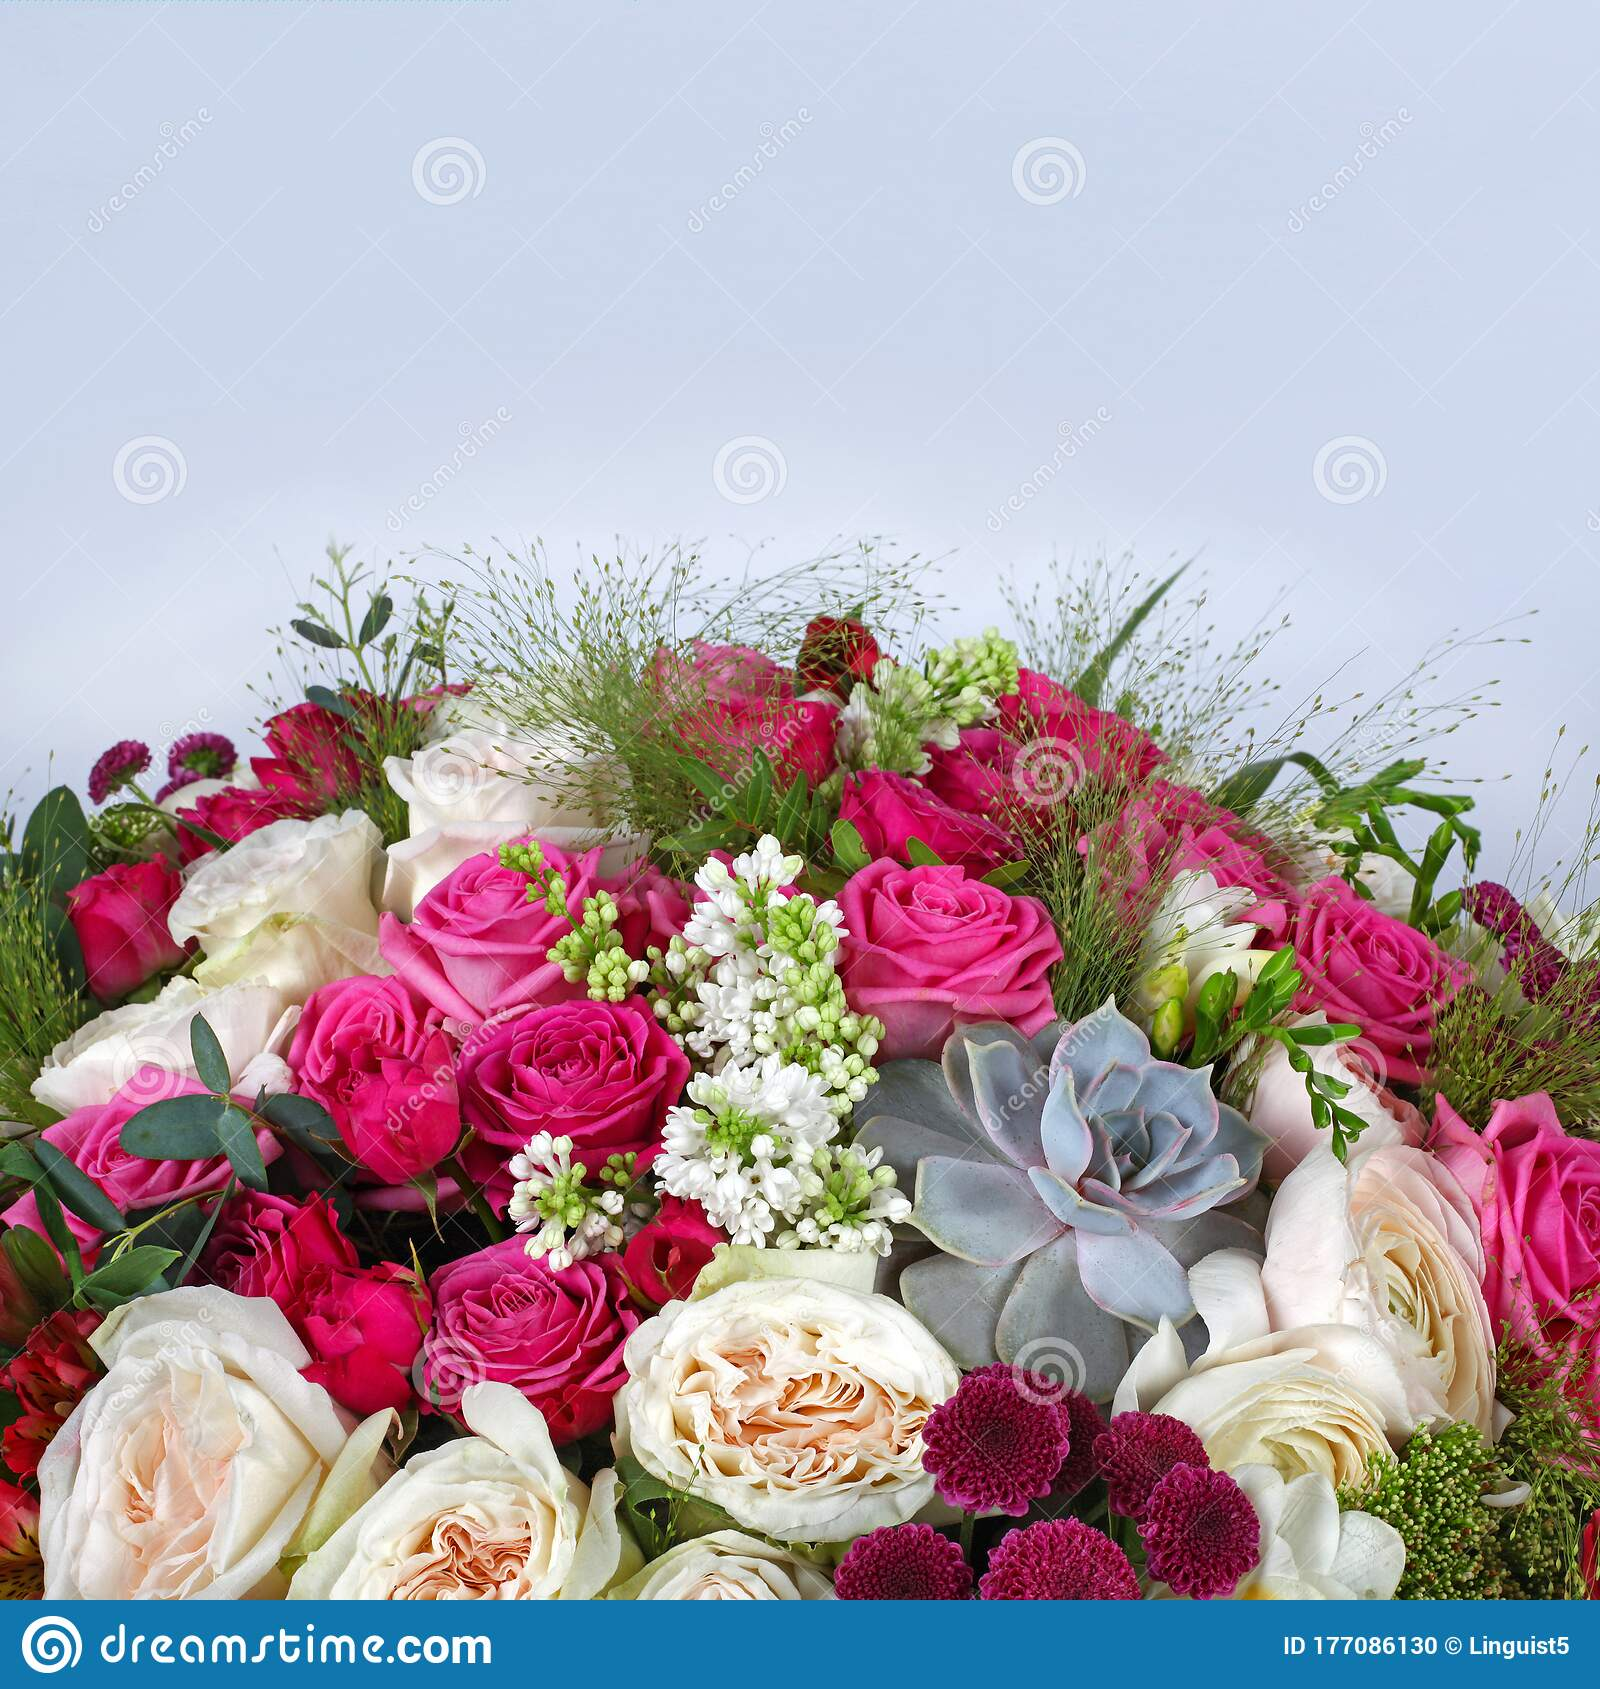 Flower Arrangement With Roses On Light Grey Blue Background Stock Photo Image Of Bunch Aspidistra 177086130